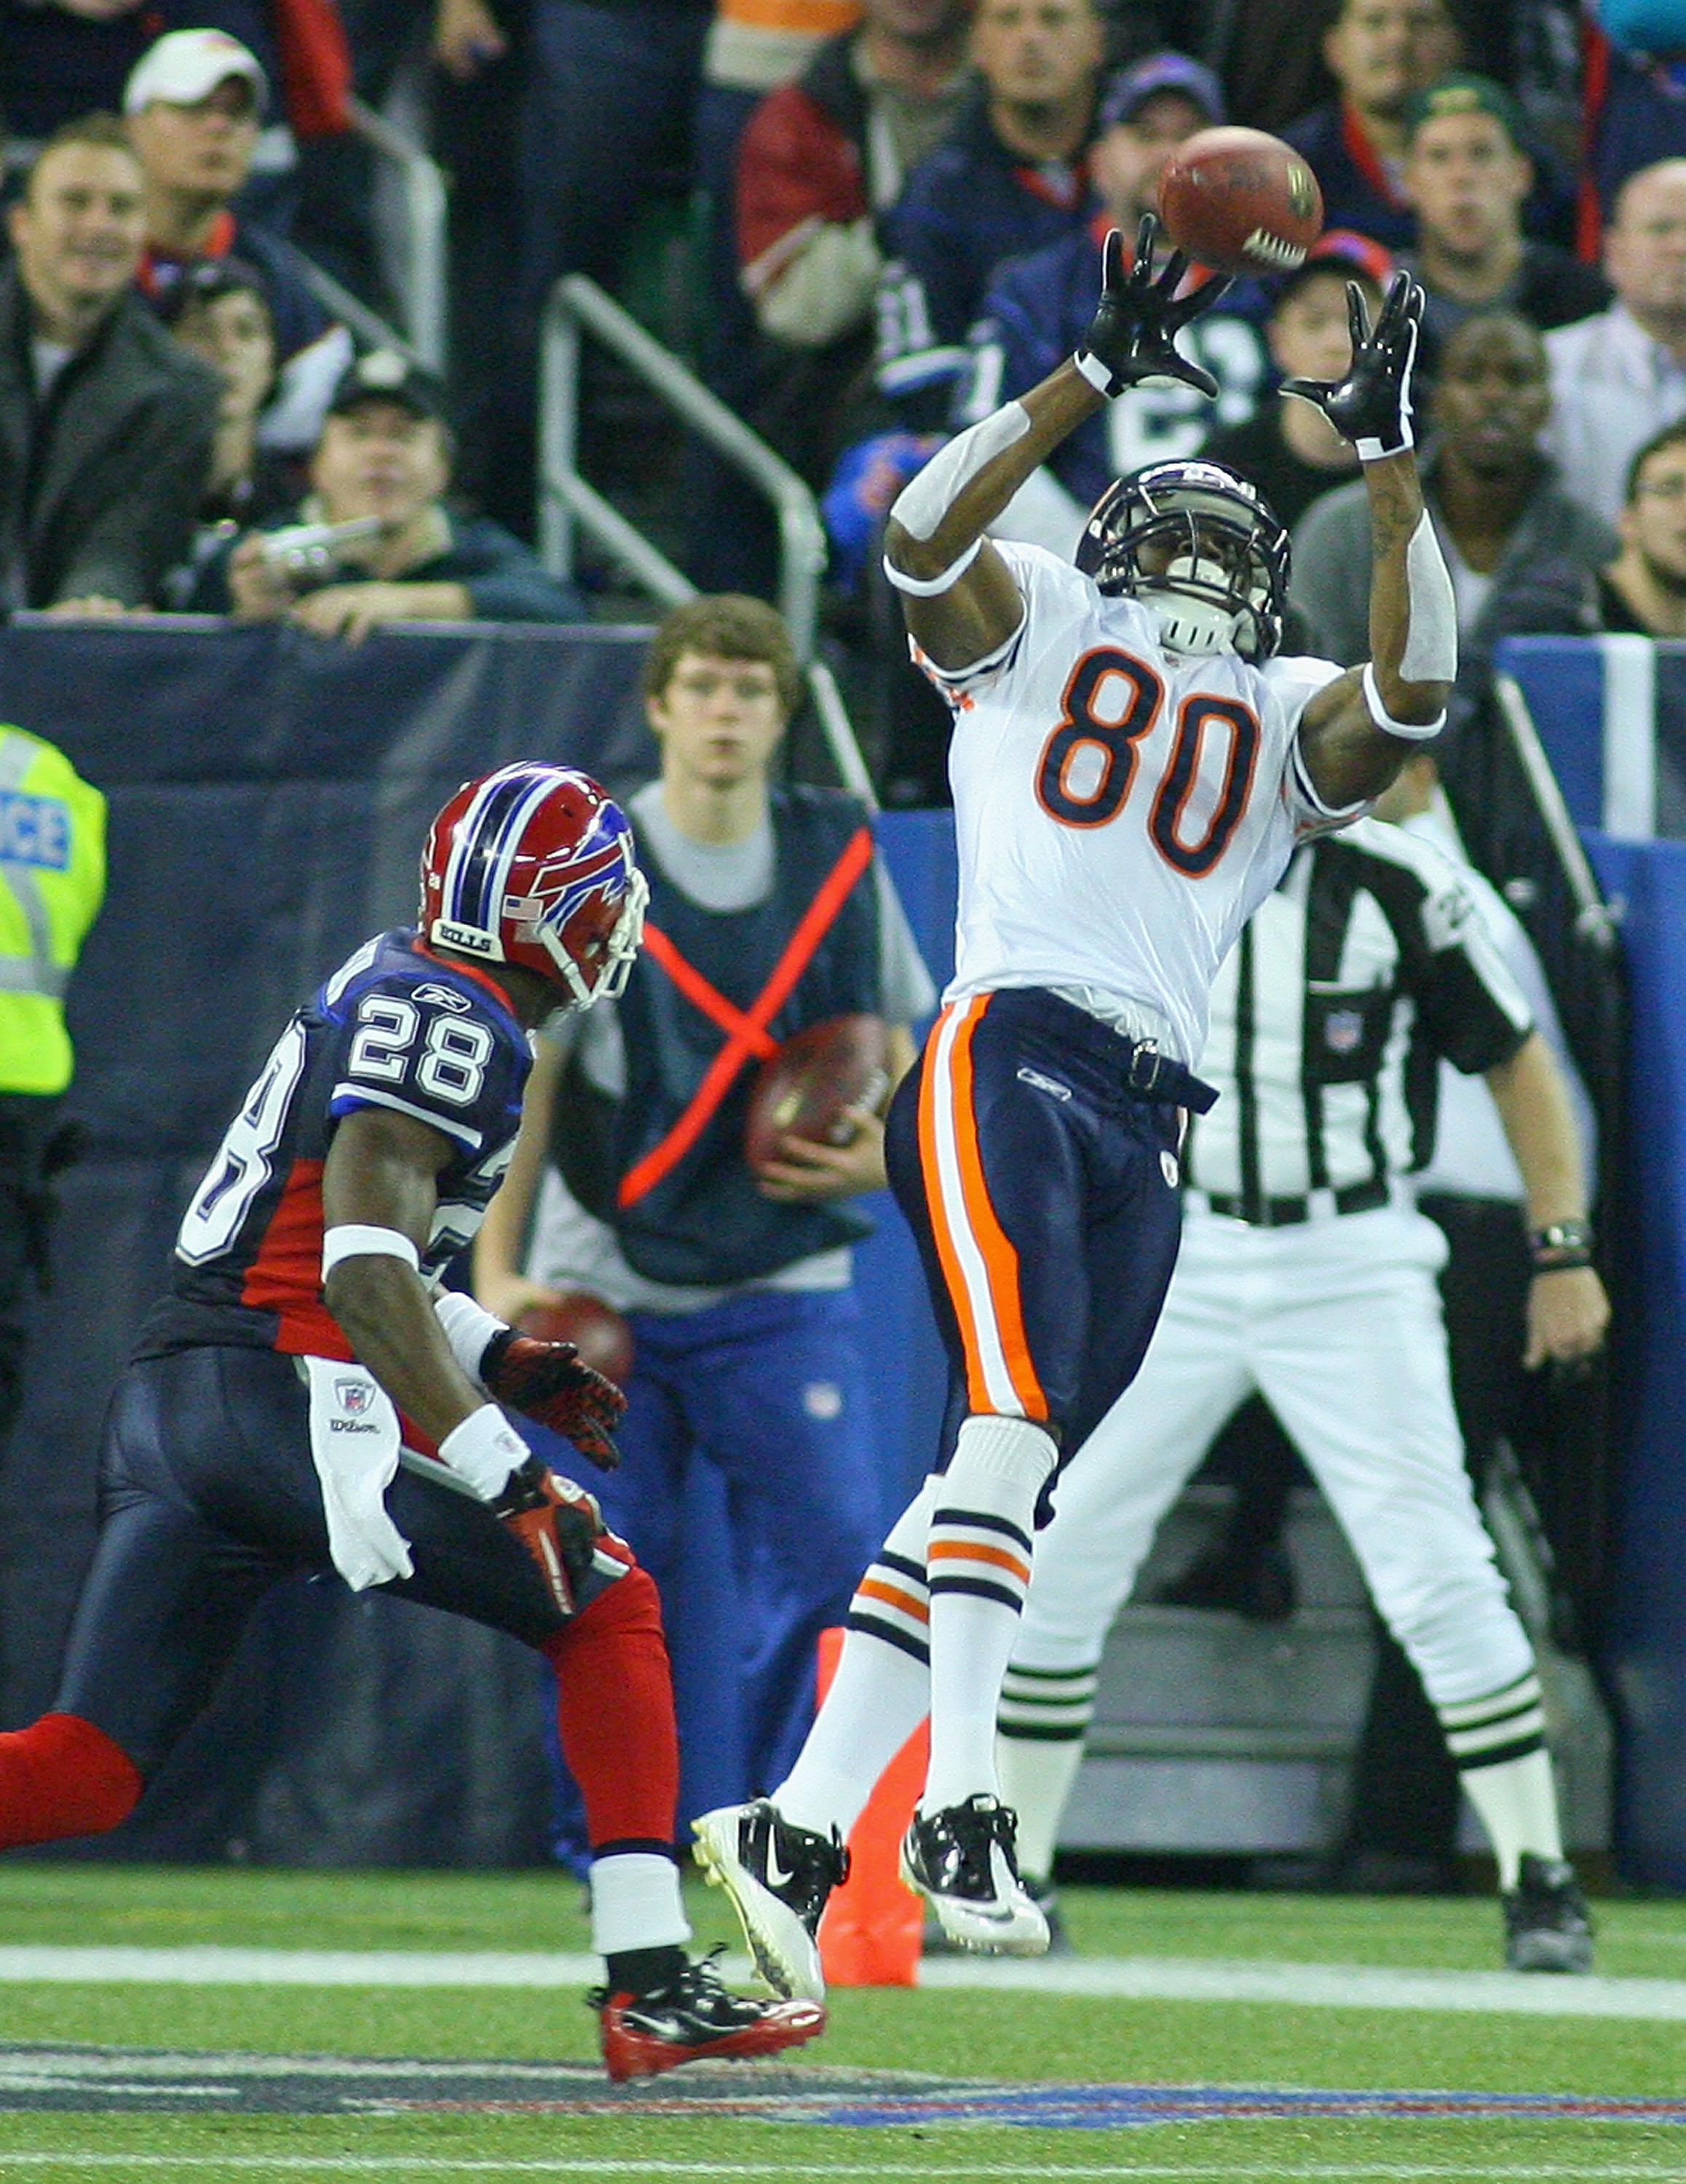 TORONTO, ON - NOVEMBER 07: Earl Bennett #80 of the Chicago Bears catches the game winning touchdown against Leodis McKelvin #28 of the Buffalo Bills  at Rogers Centre on November 7, 2010 in Toronto, Canada. Chicago won 22-19. (Photo by Rick Stewart/Getty